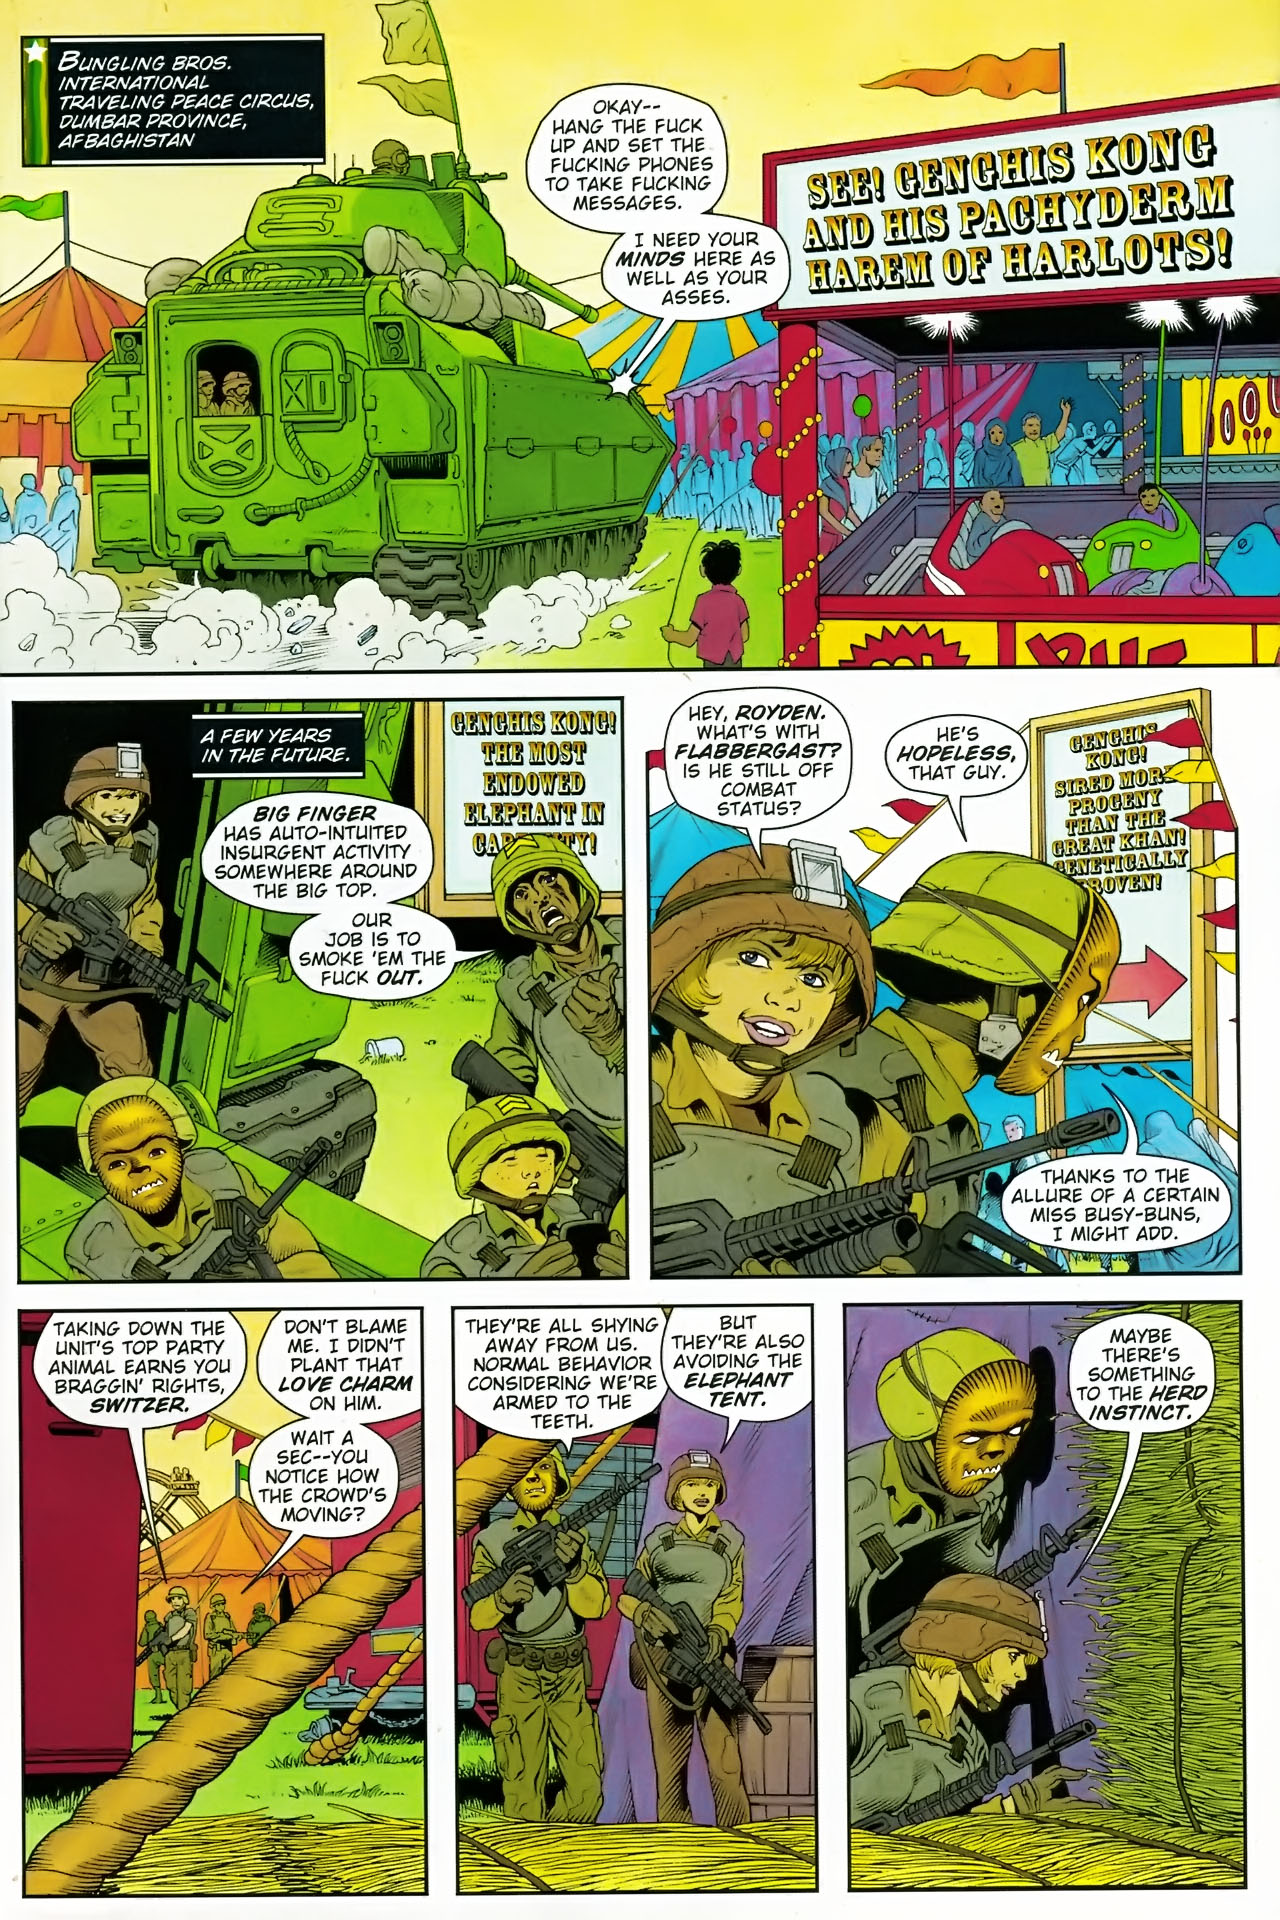 Read online Army @ Love comic -  Issue #7 - 2